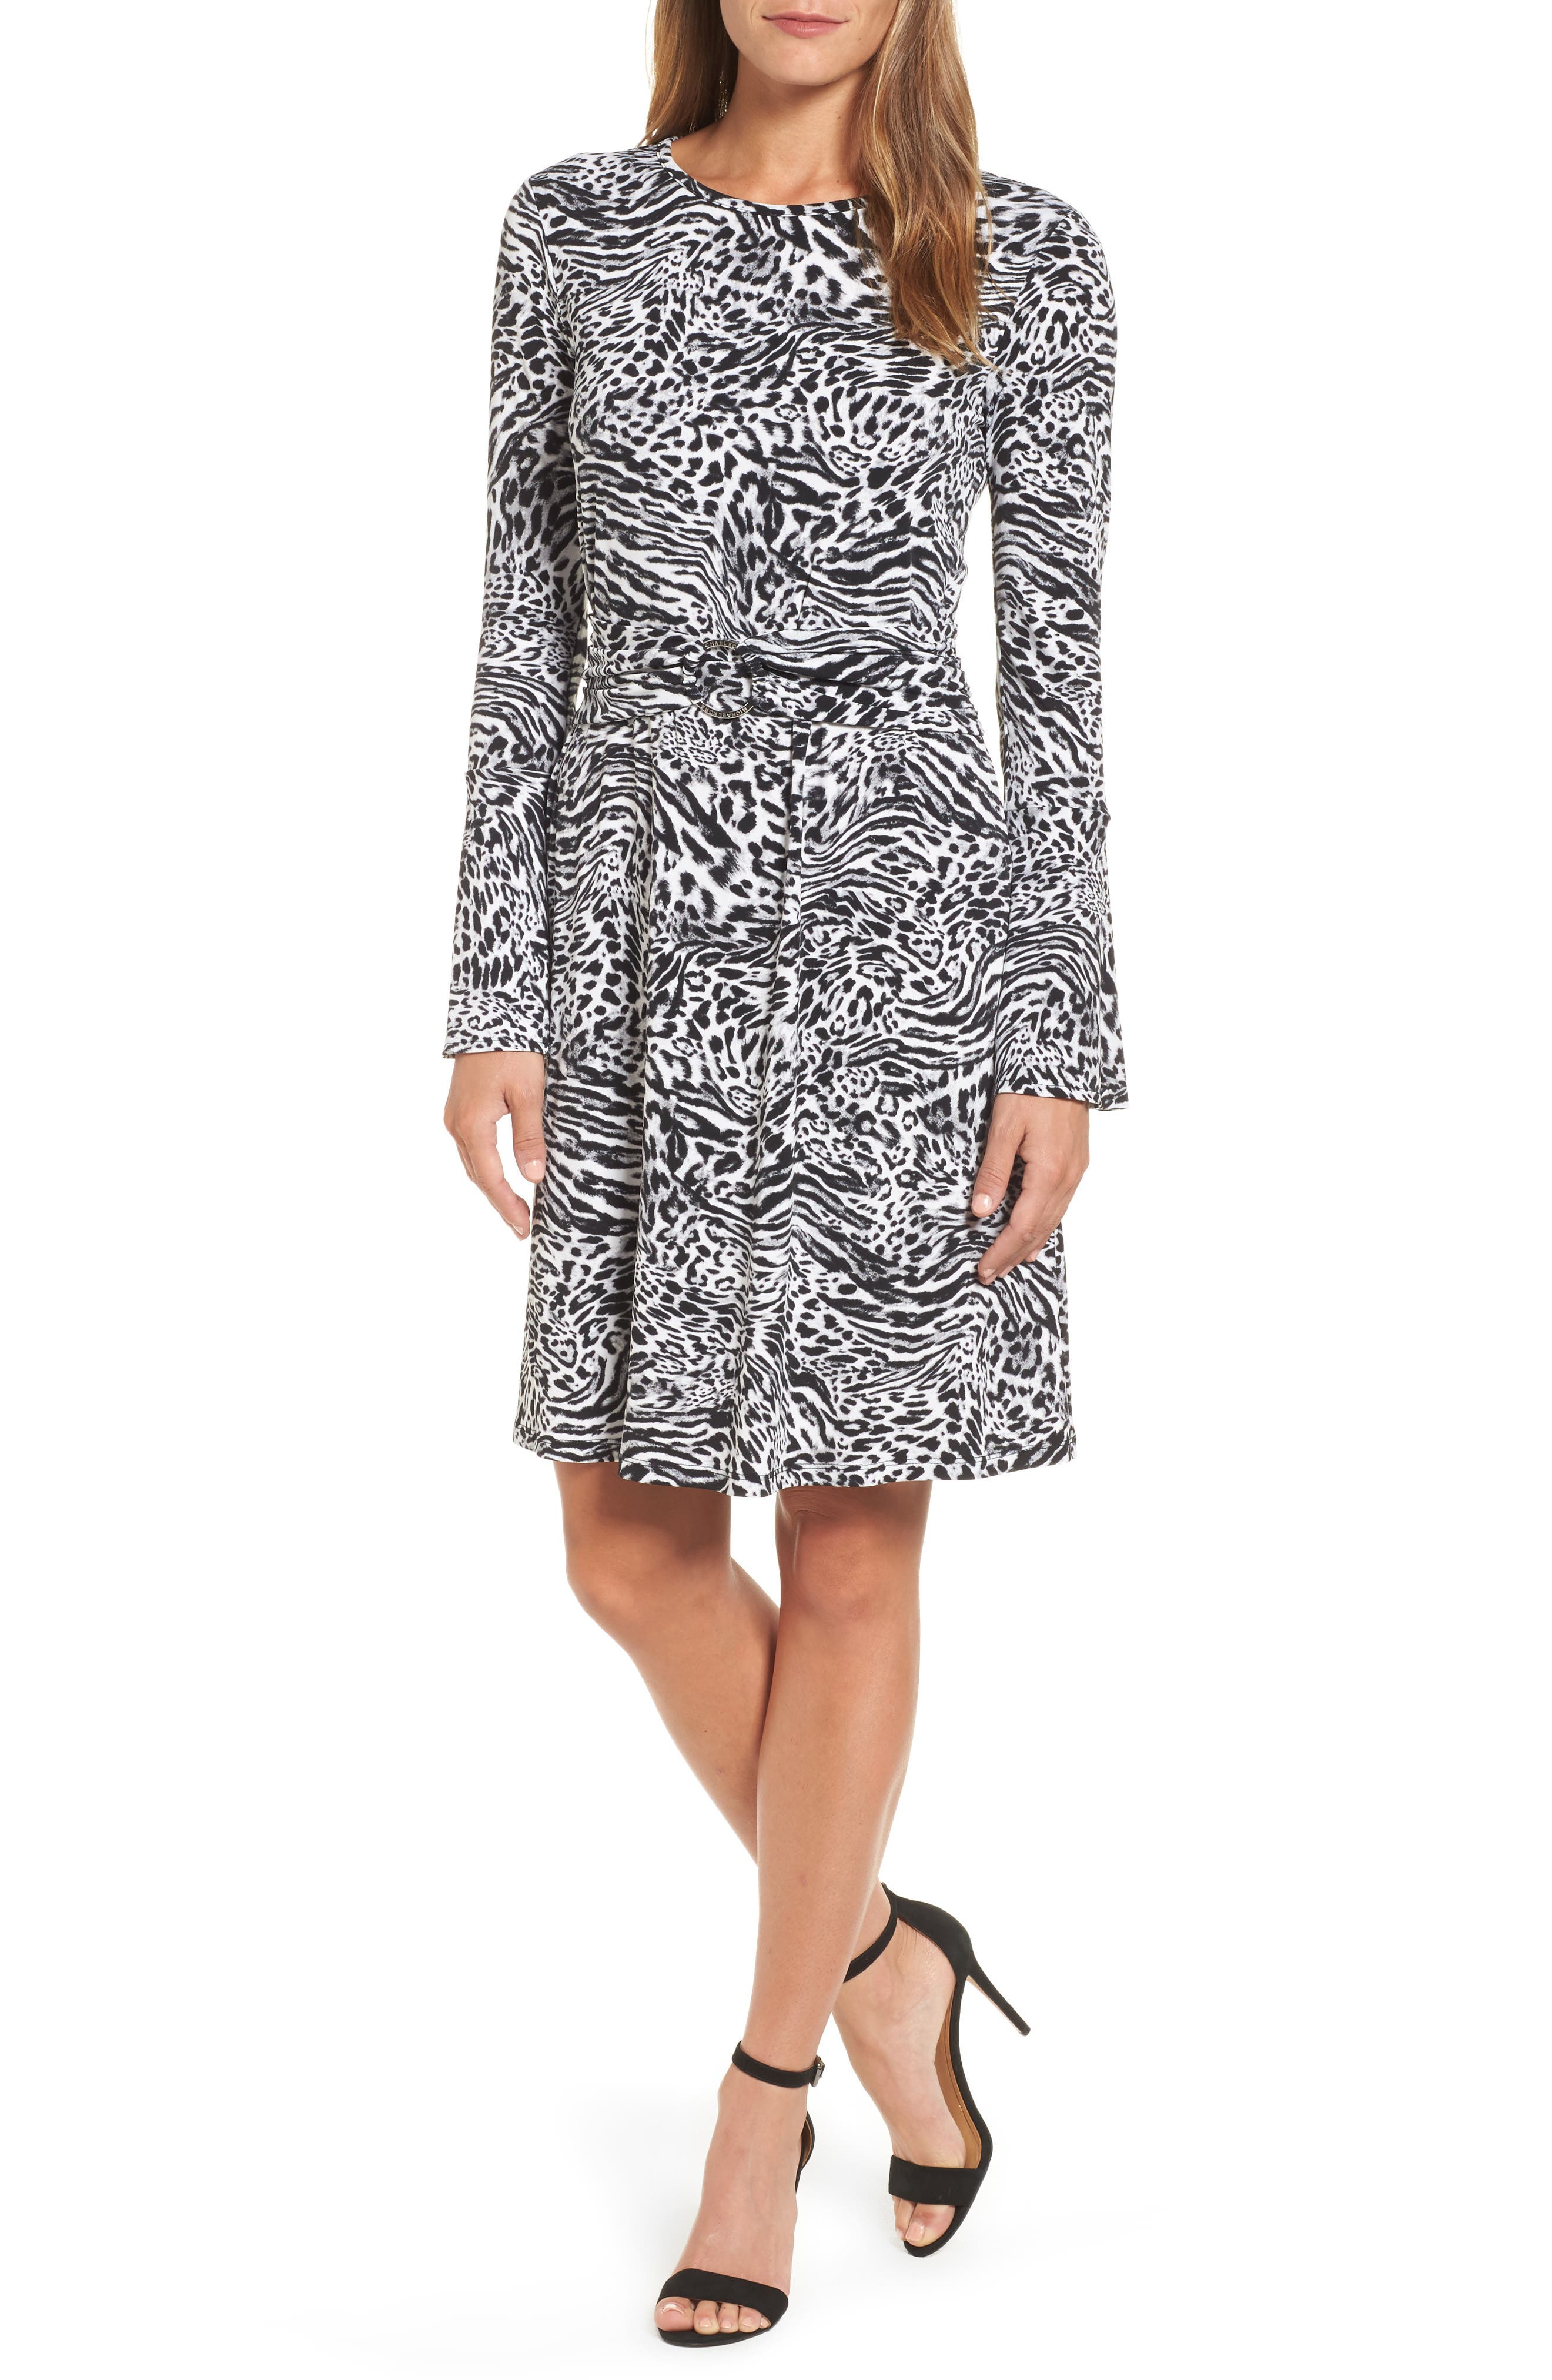 Alternate Image 1 Selected - MICHAEL Michael Kors Big Cat A-Line Dress